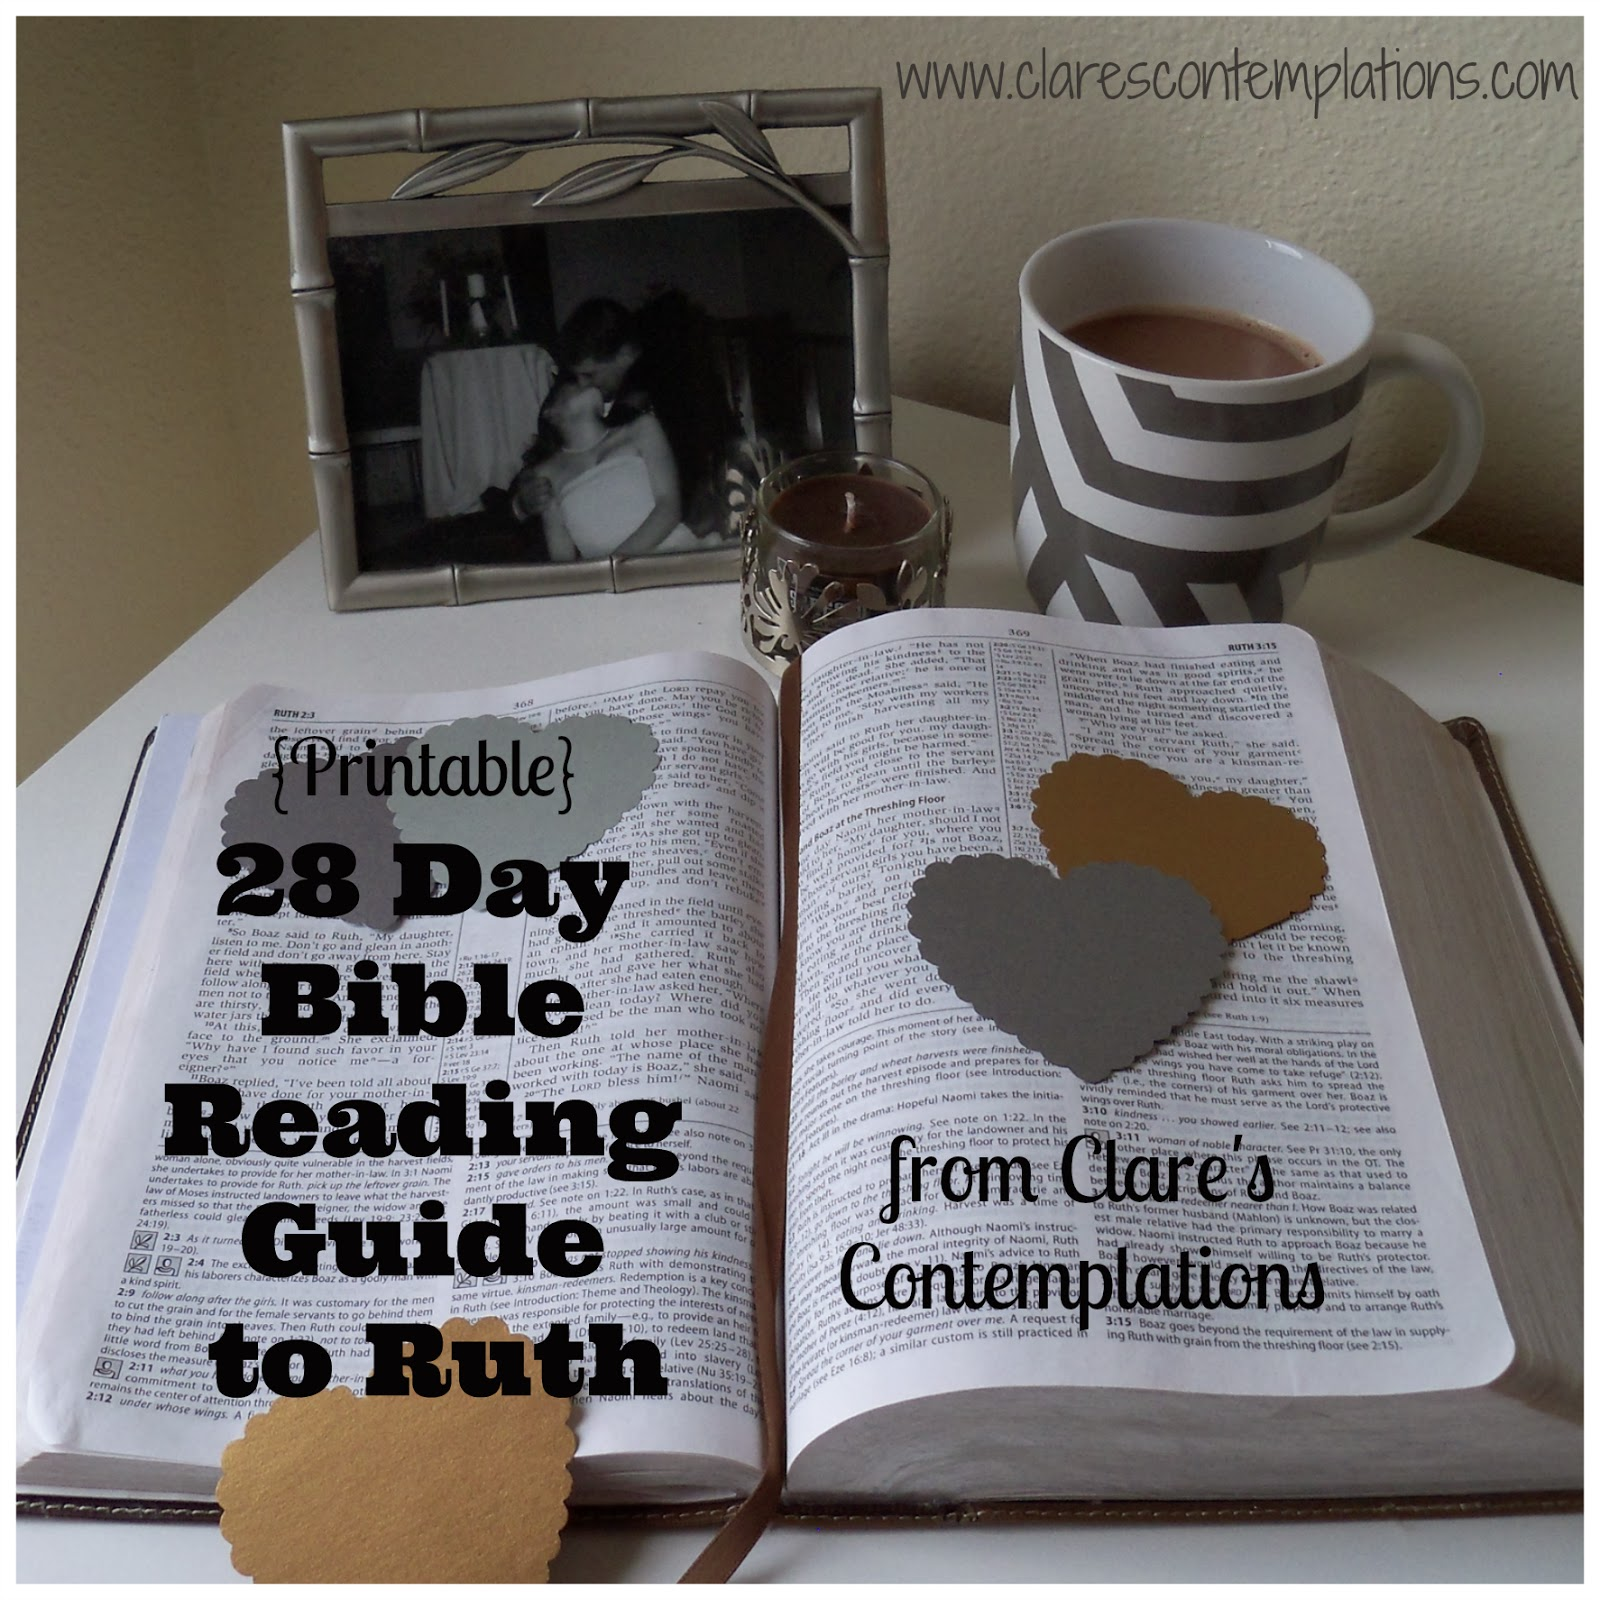 http://www.clarescontemplations.com/2014/01/28-day-bible-reading-guide-to-ruth.html